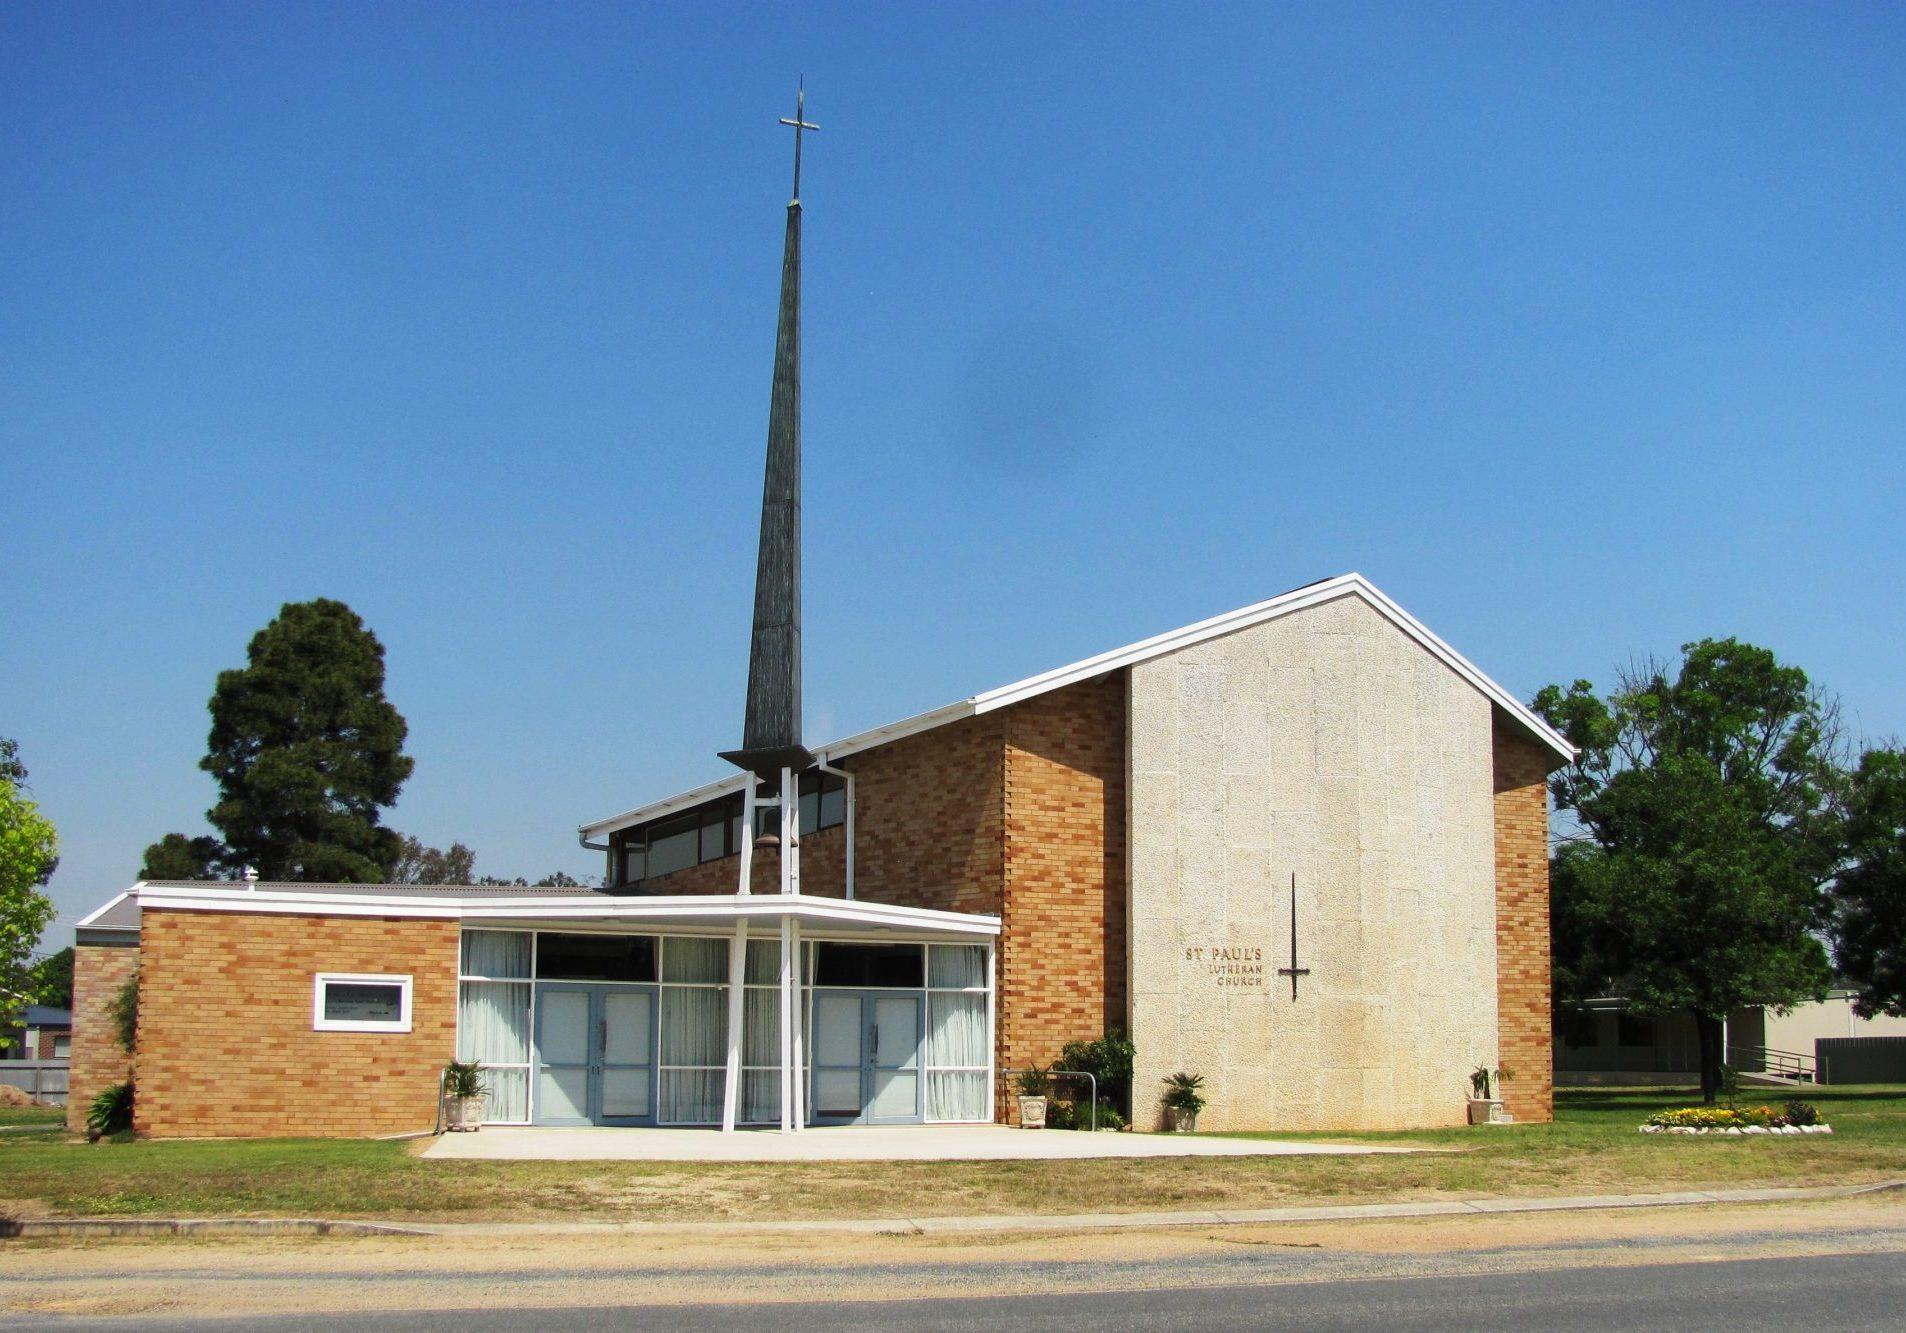 007 ST PAULS LUTHERAN CHURCH